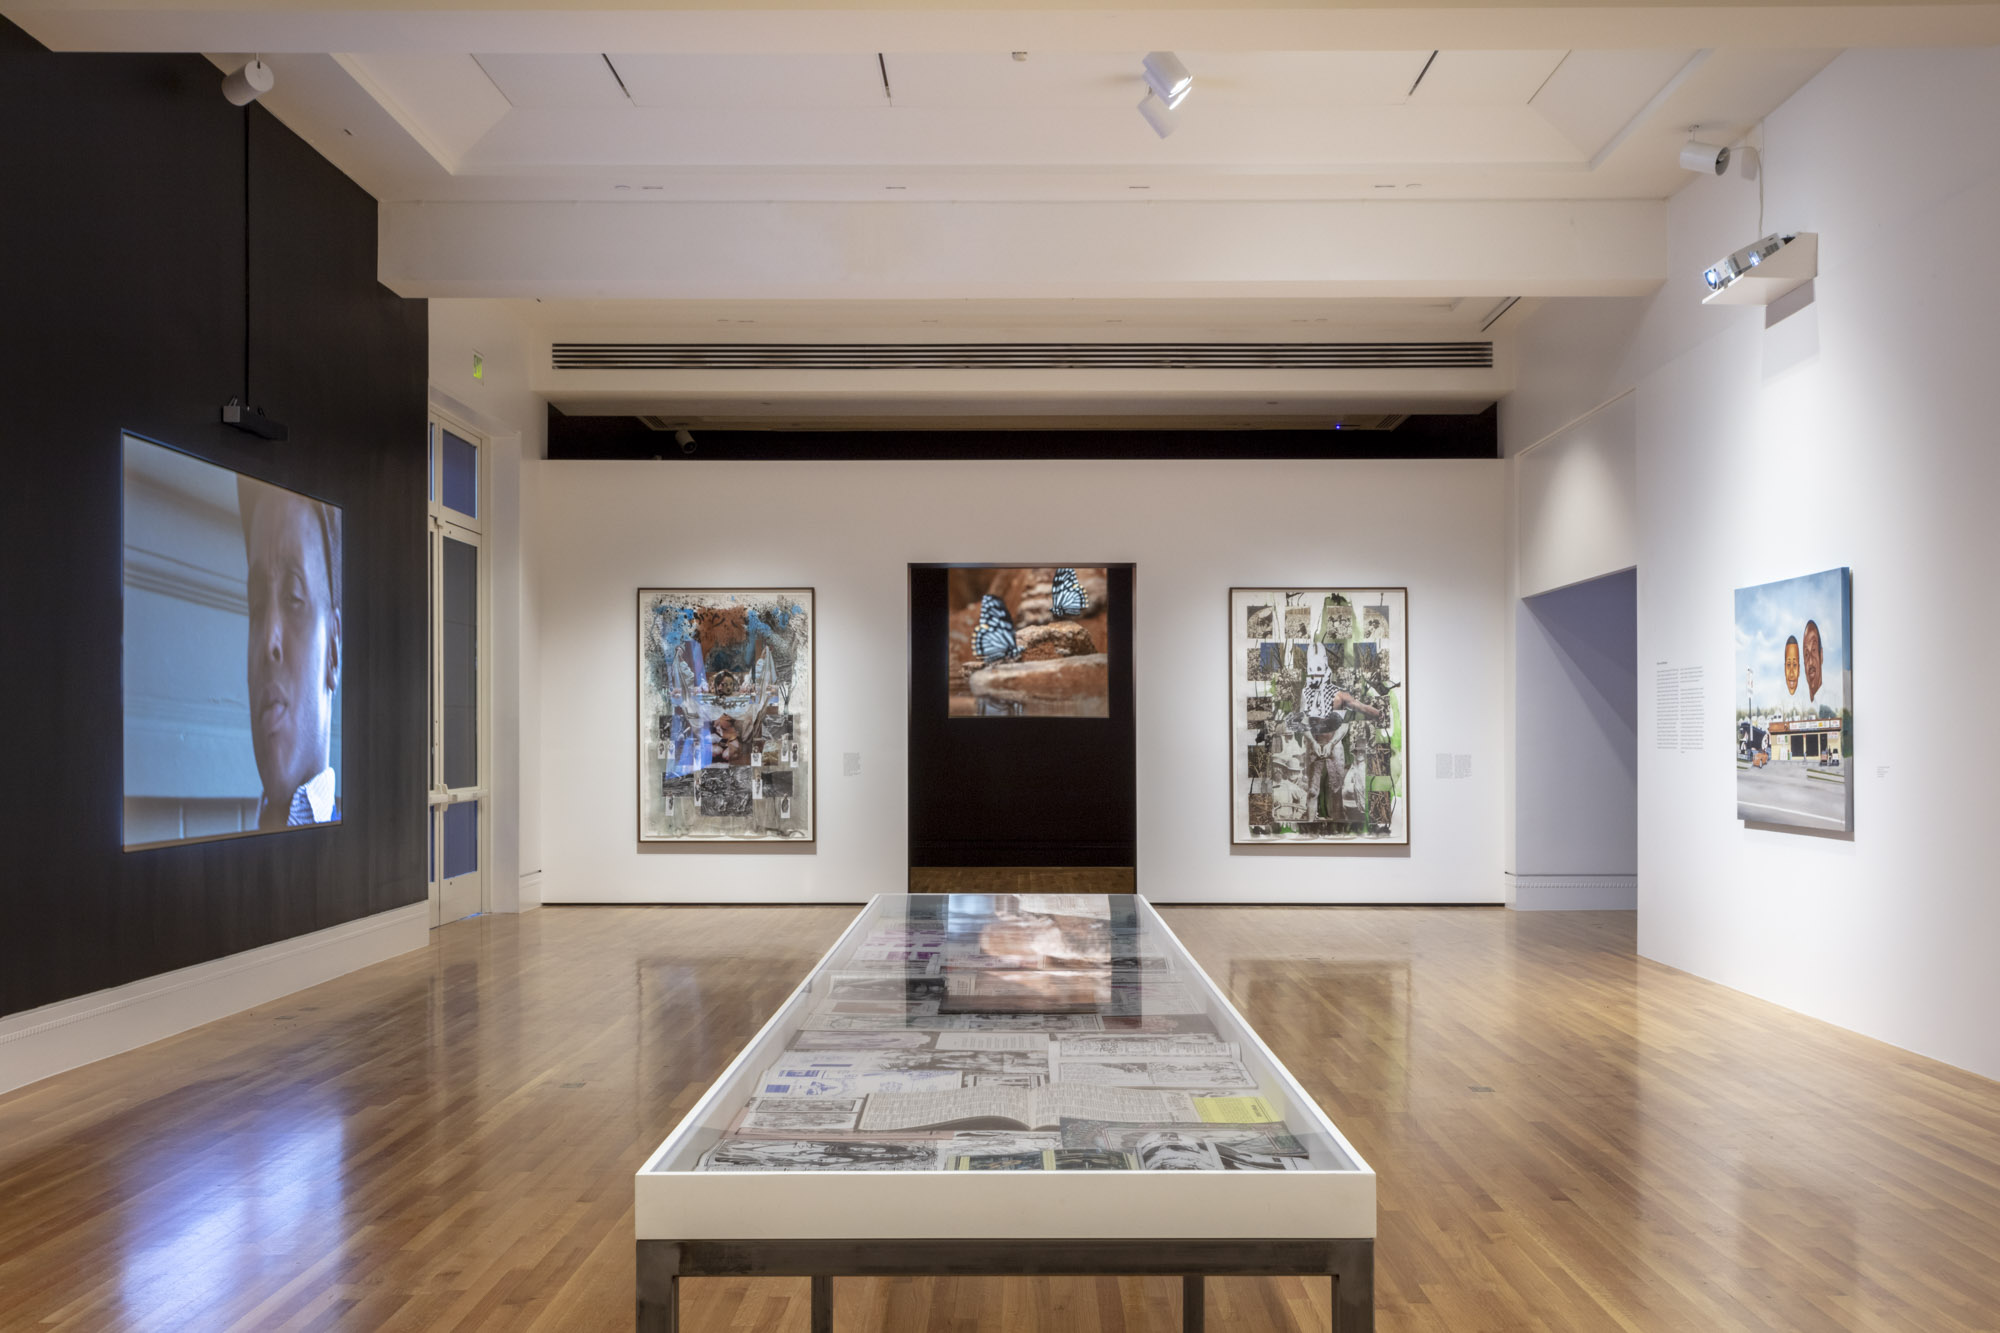 """An installation view of Mario Ayala's work at """"Made in L.A. 2020: a version"""" at The Huntington Library, Art Museum, and Botanical Gardens, San Marino. 